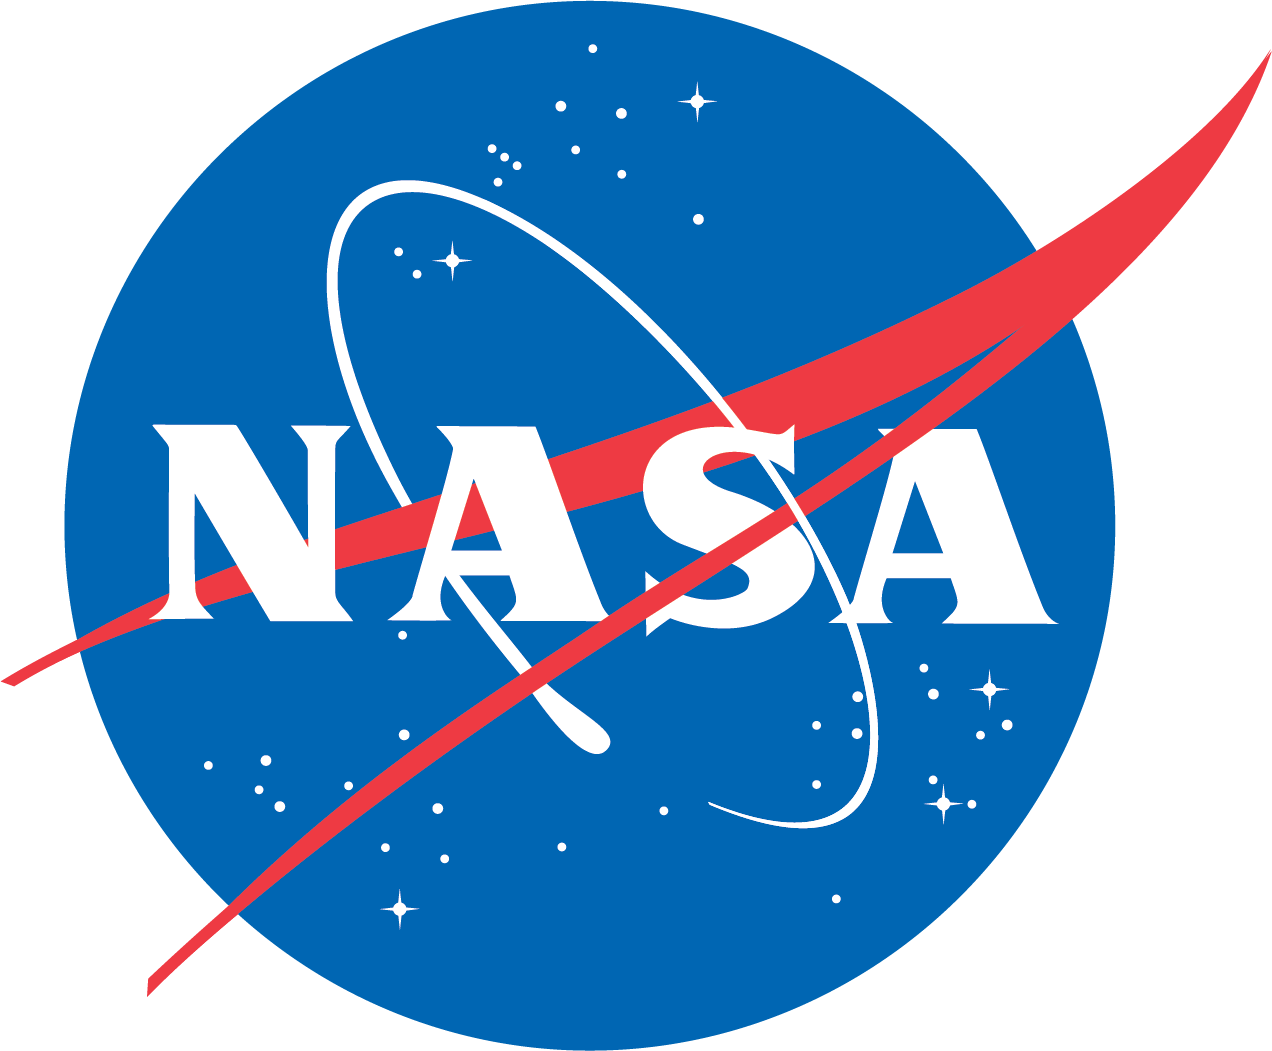 Marena partnered with NASA in 2017 to develop compression garments for astronauts